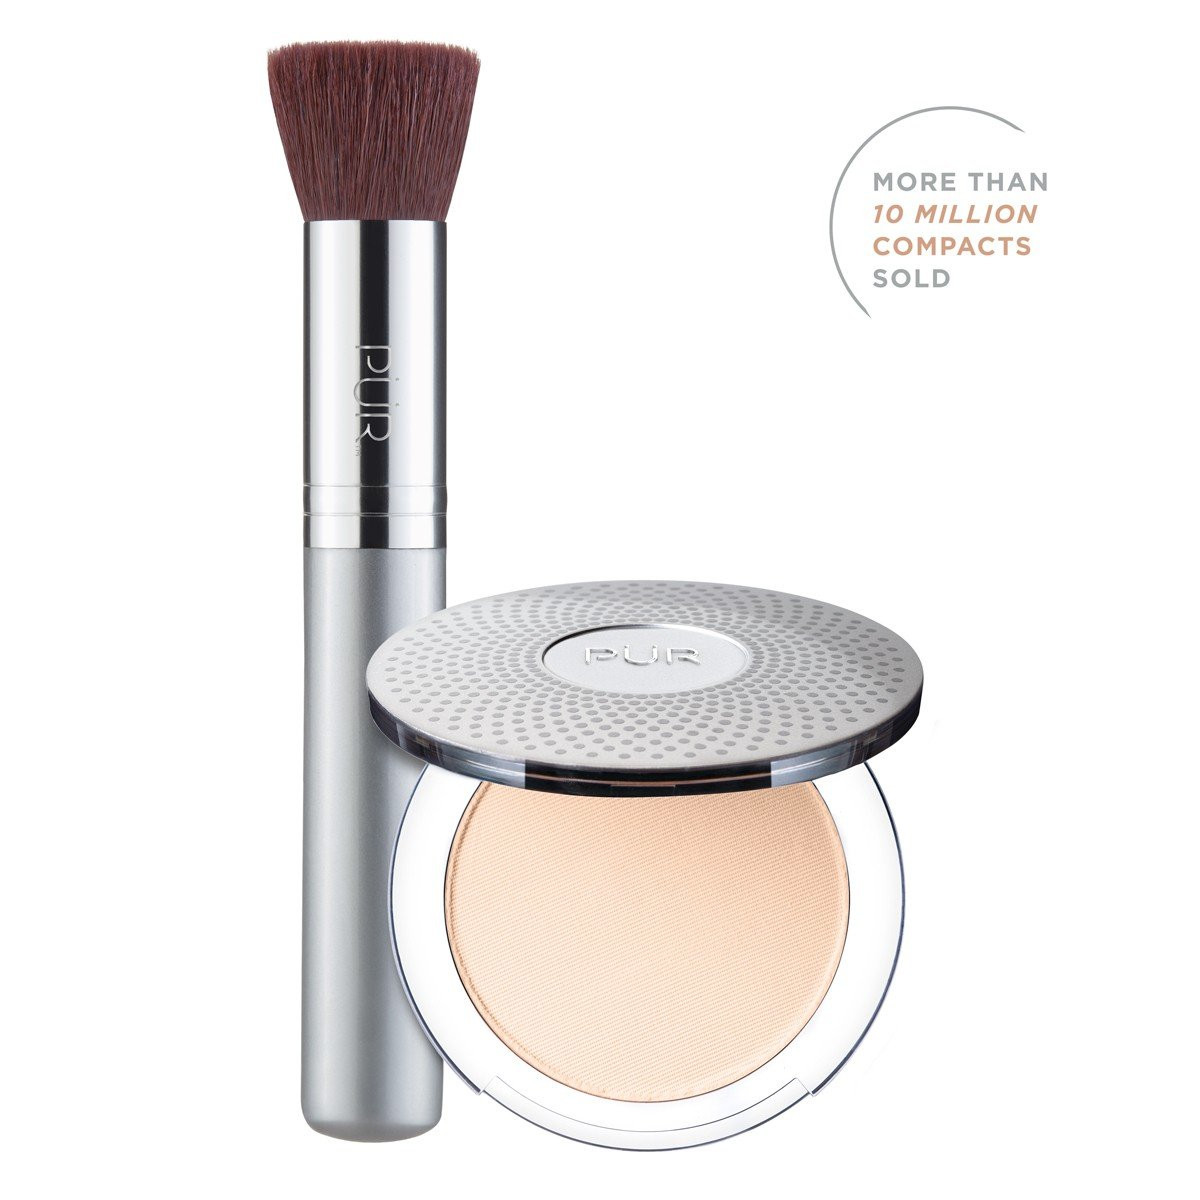 TRY PÜR! 4-in-1 Pressed Mineral Makeup and Brush Kit in Porcelain